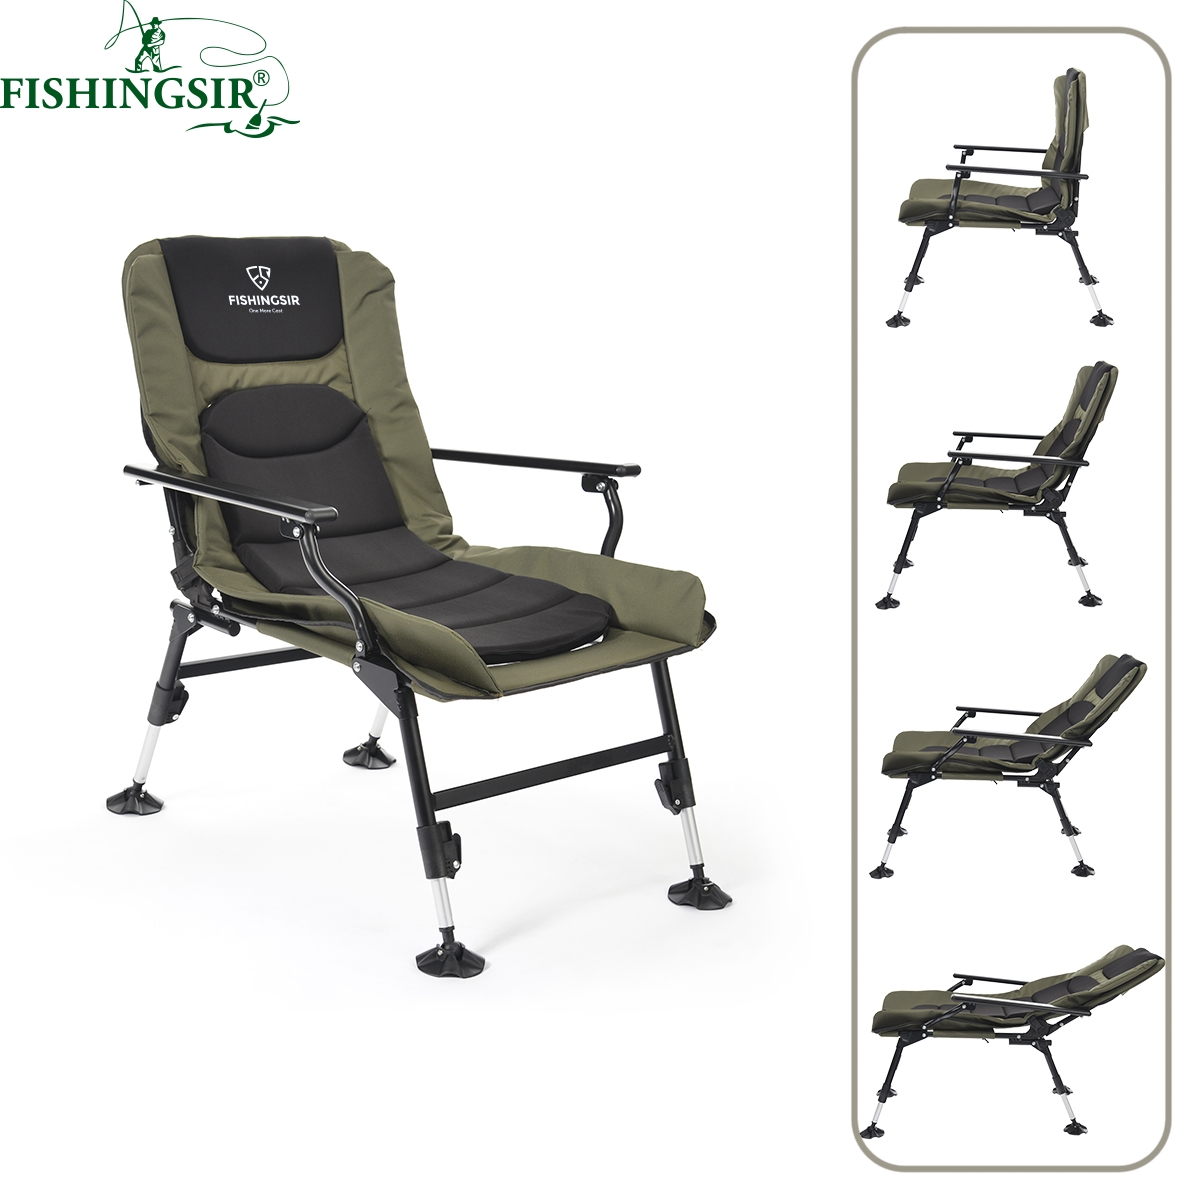 fishing chair with headrest cheap single chairs buy fold lounge bronze finether folding zero